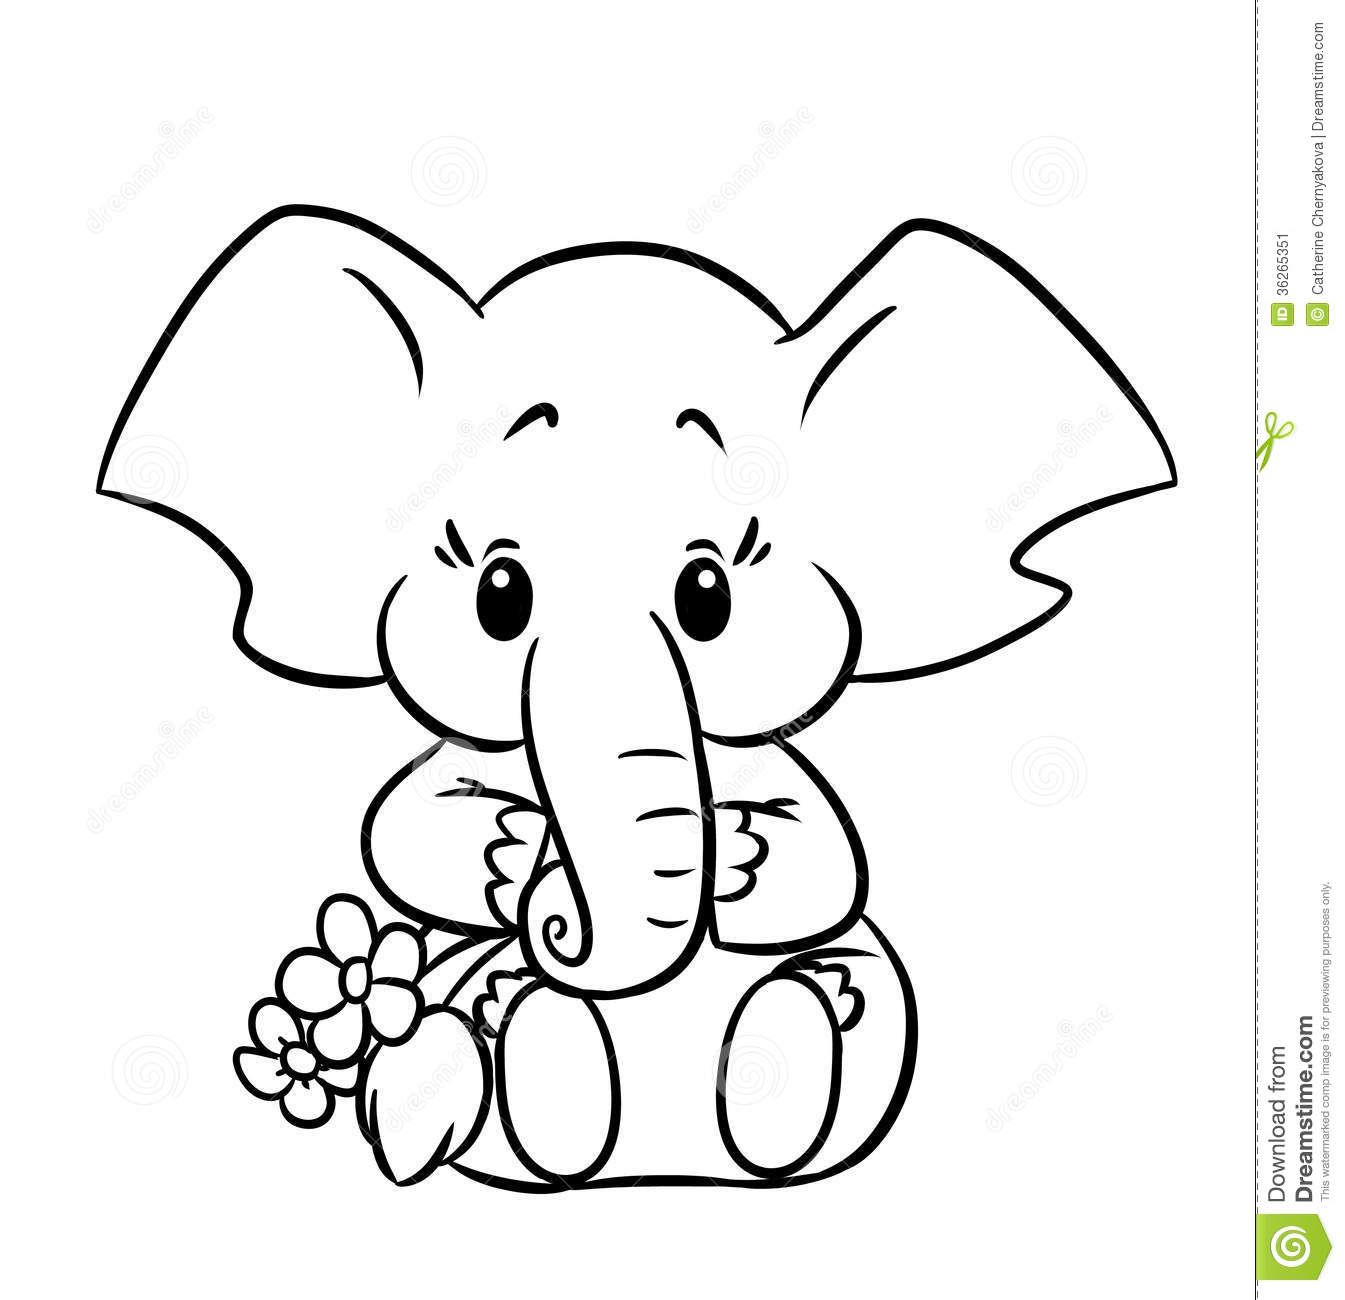 coloring pages elephant # 2